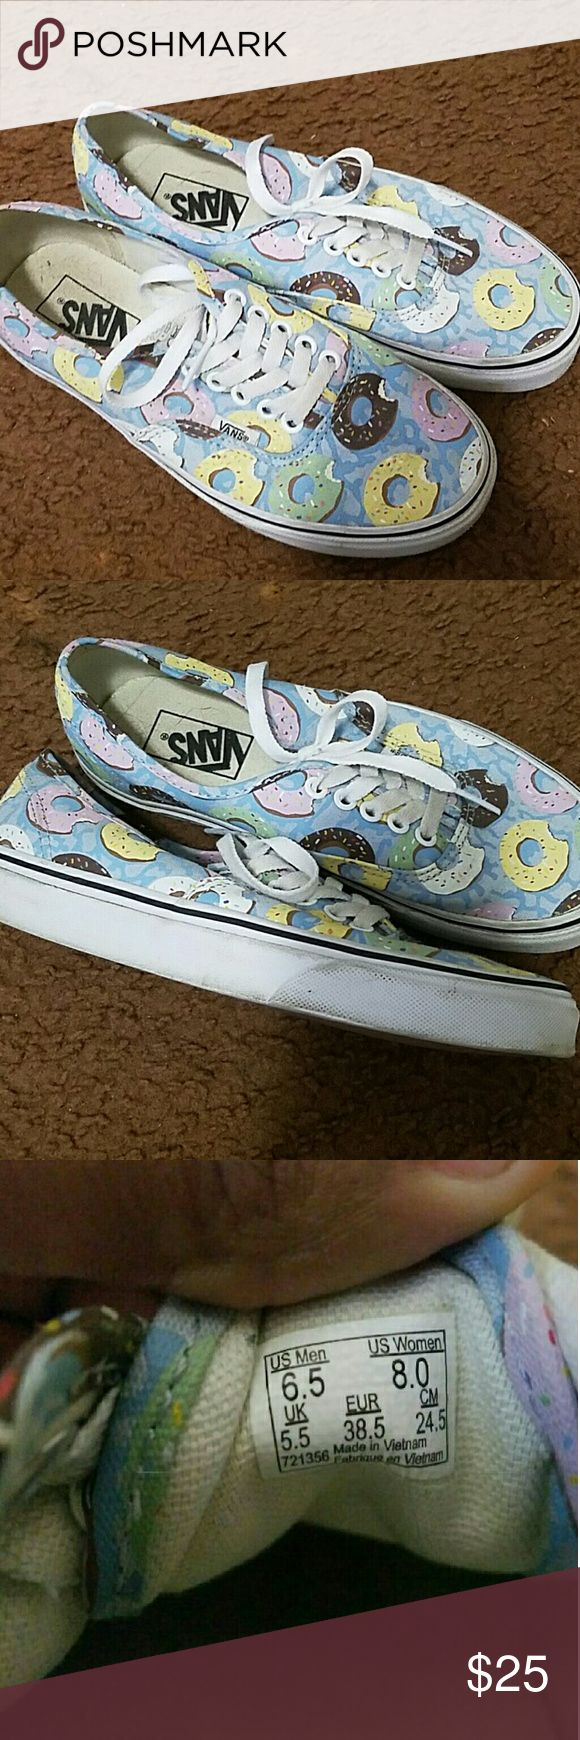 Vans Donut Shoes Also on Mercari @xoxochristine. Wore twice, like new with a few scuffs that I can clean for you Vans Shoes Sneakers